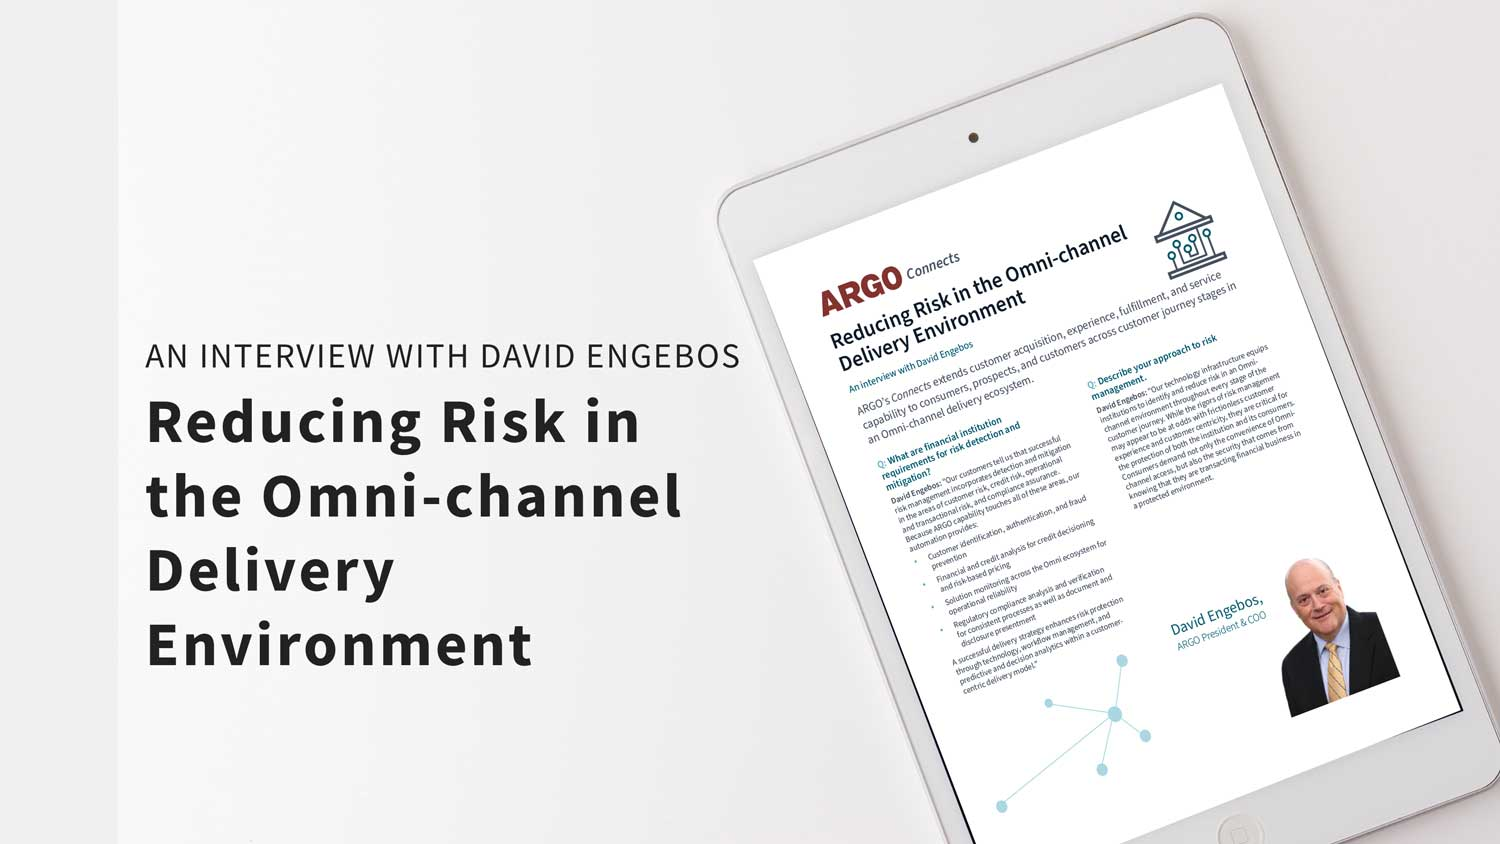 Reducing risk in the omni channel environment